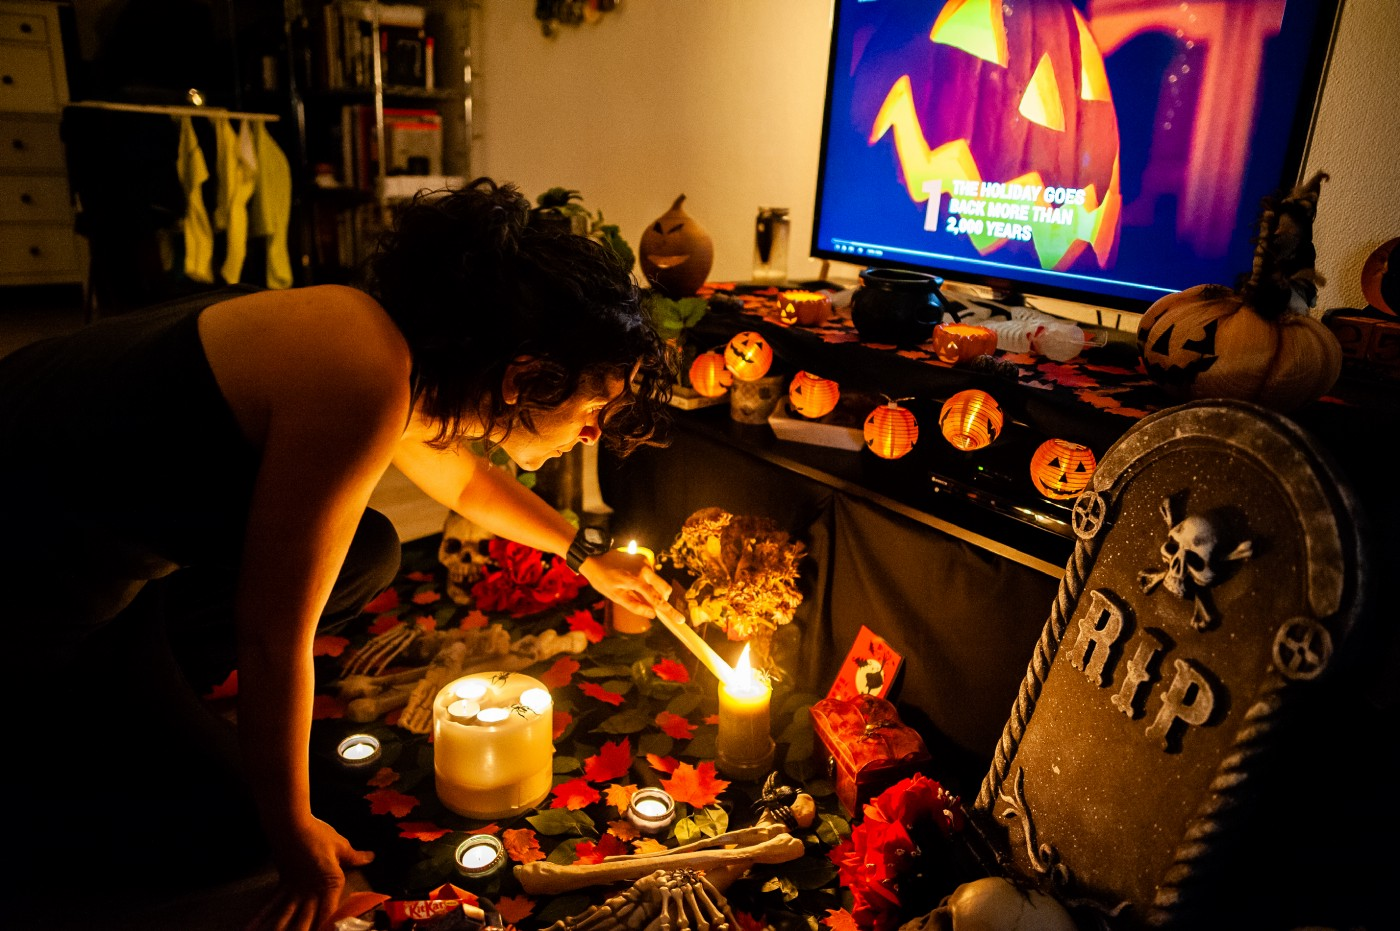 A person lights a candle on an altar on the floor in front of a TV displaying a jack-o'-lantern.